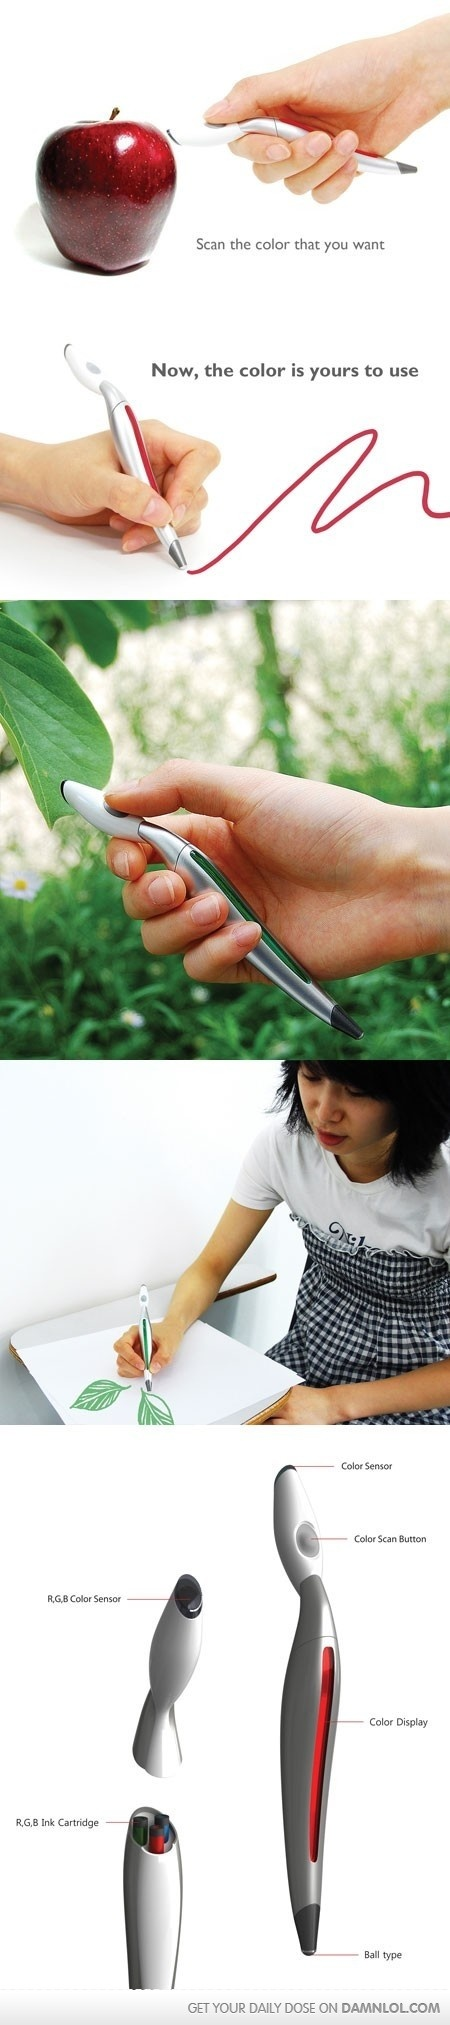 Colors of the world - Scan Pen!     Colour Scan Pen! This is awesome!!